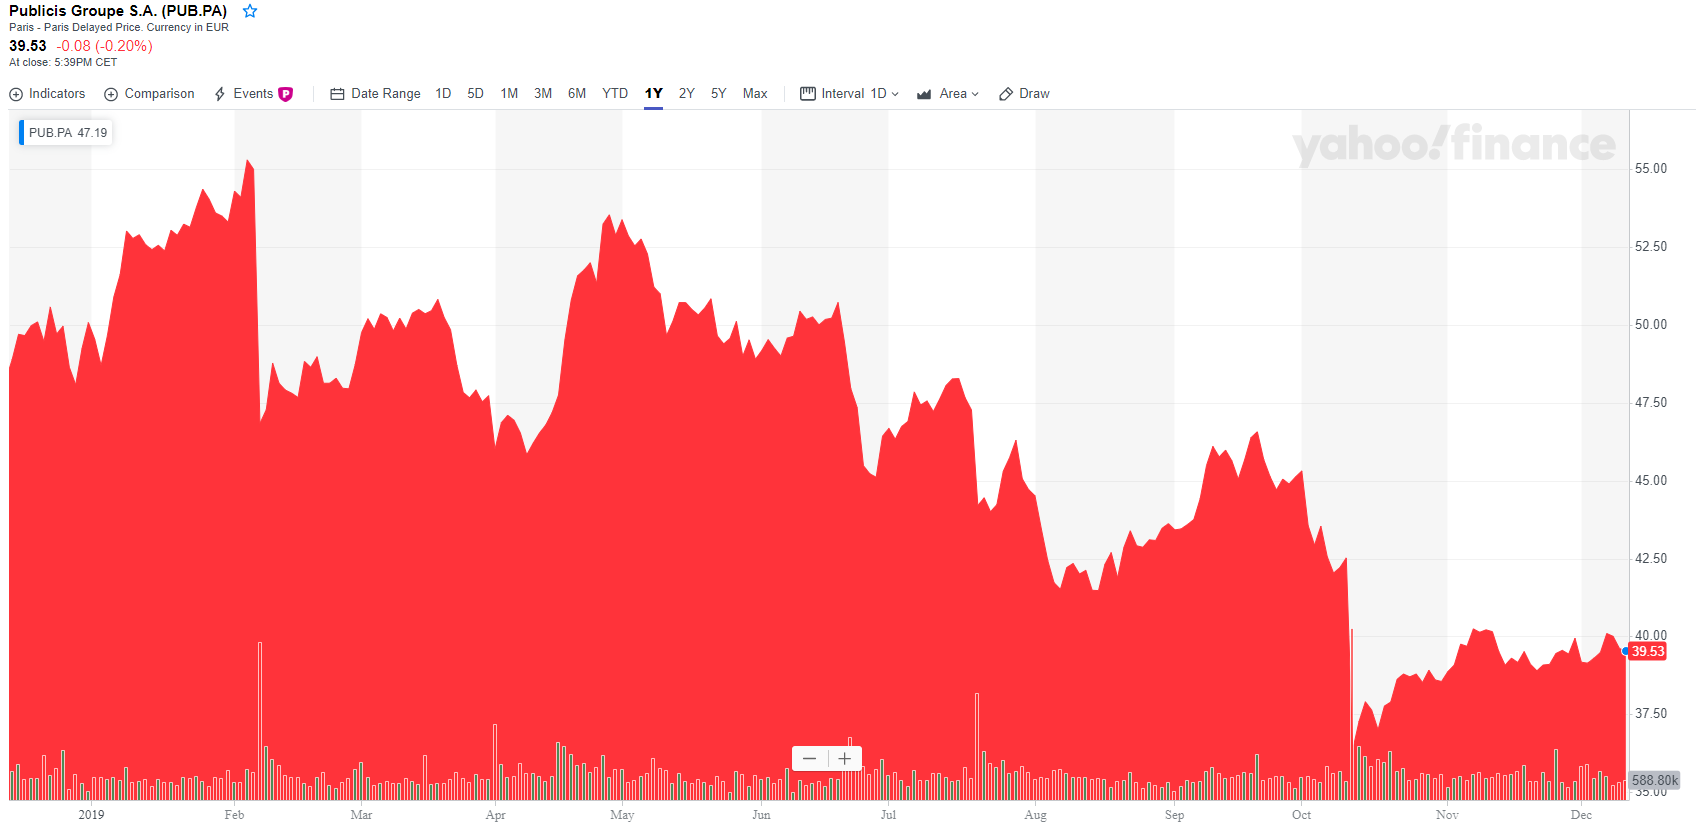 Publicis: A 5% Dividend Yield While Hoping For The Best With The Recent Large Acquisition - Publicis S.A. (OTCMKTS:PBCBF) | Seeking Alpha